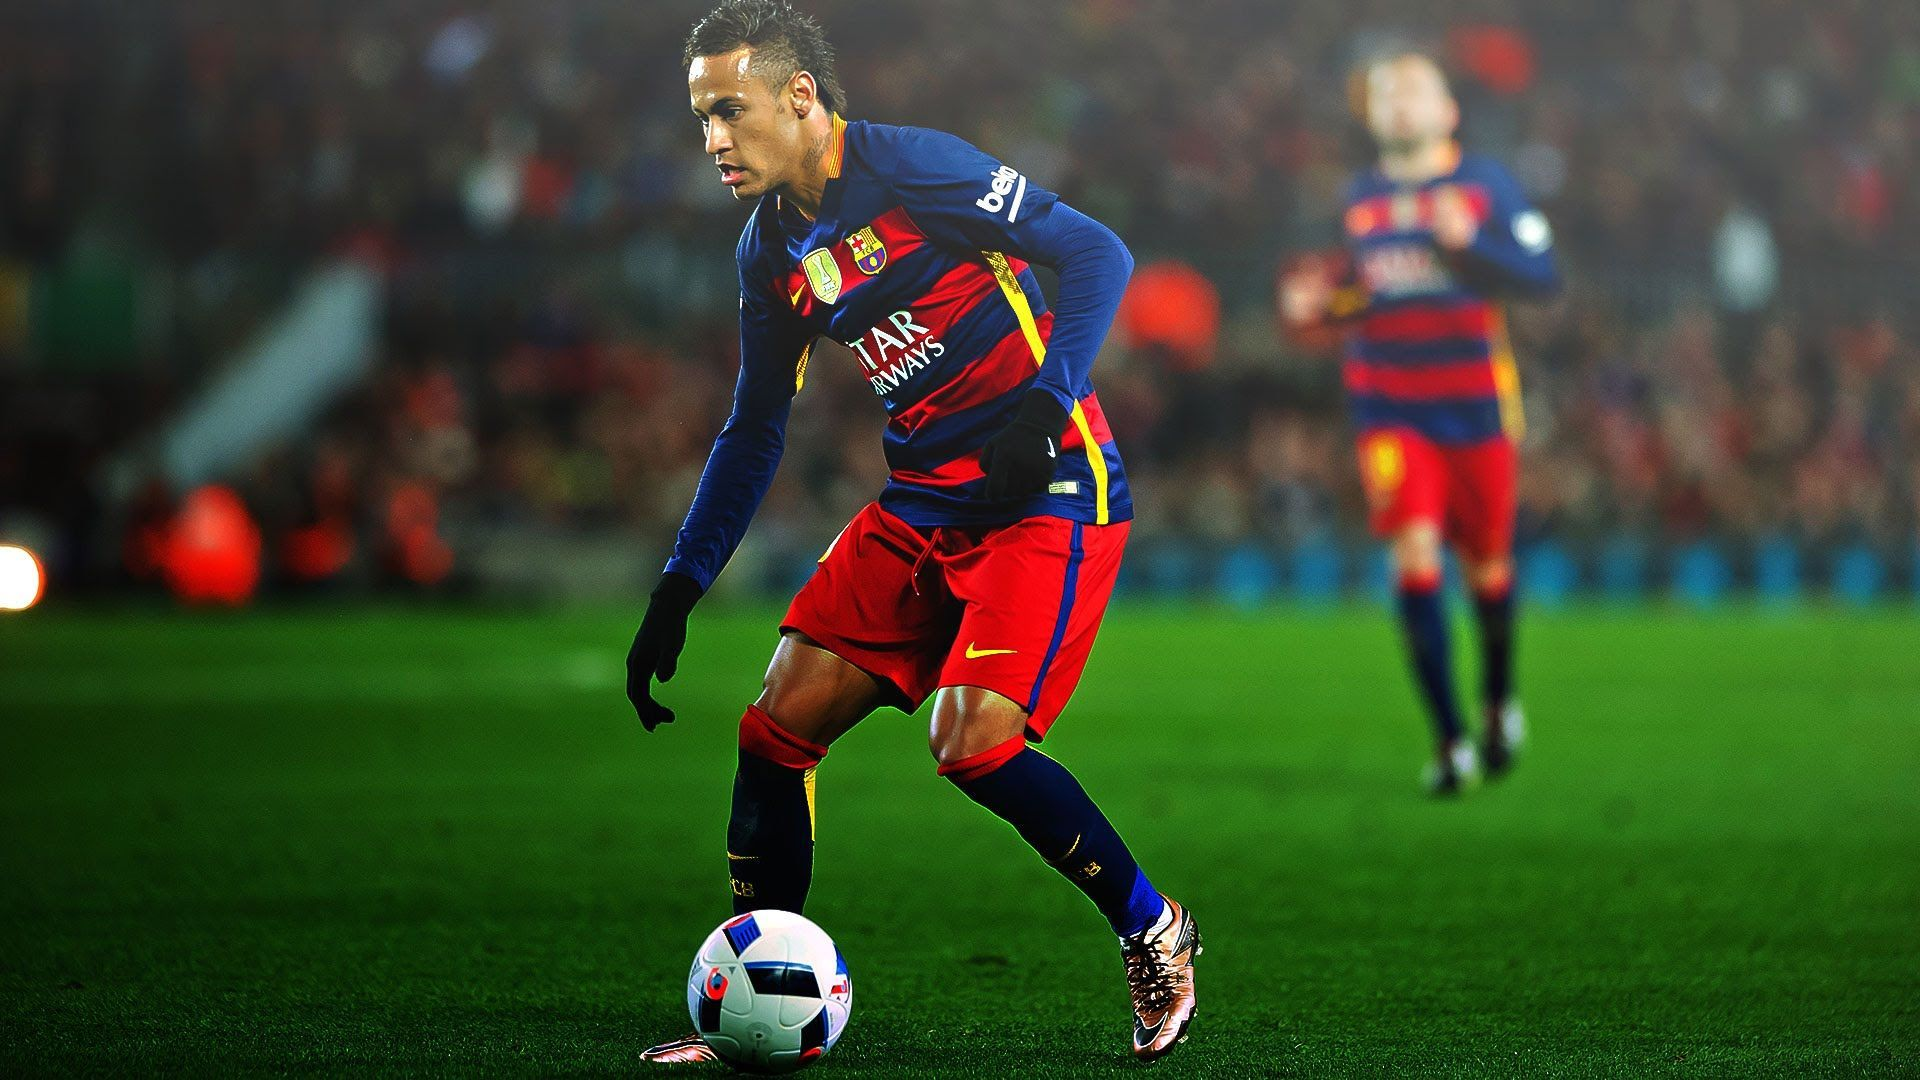 Neymar Football Soccer Player Free Hd Ball With Run Mobile Desktop Bakground Download Wallpaper Photos